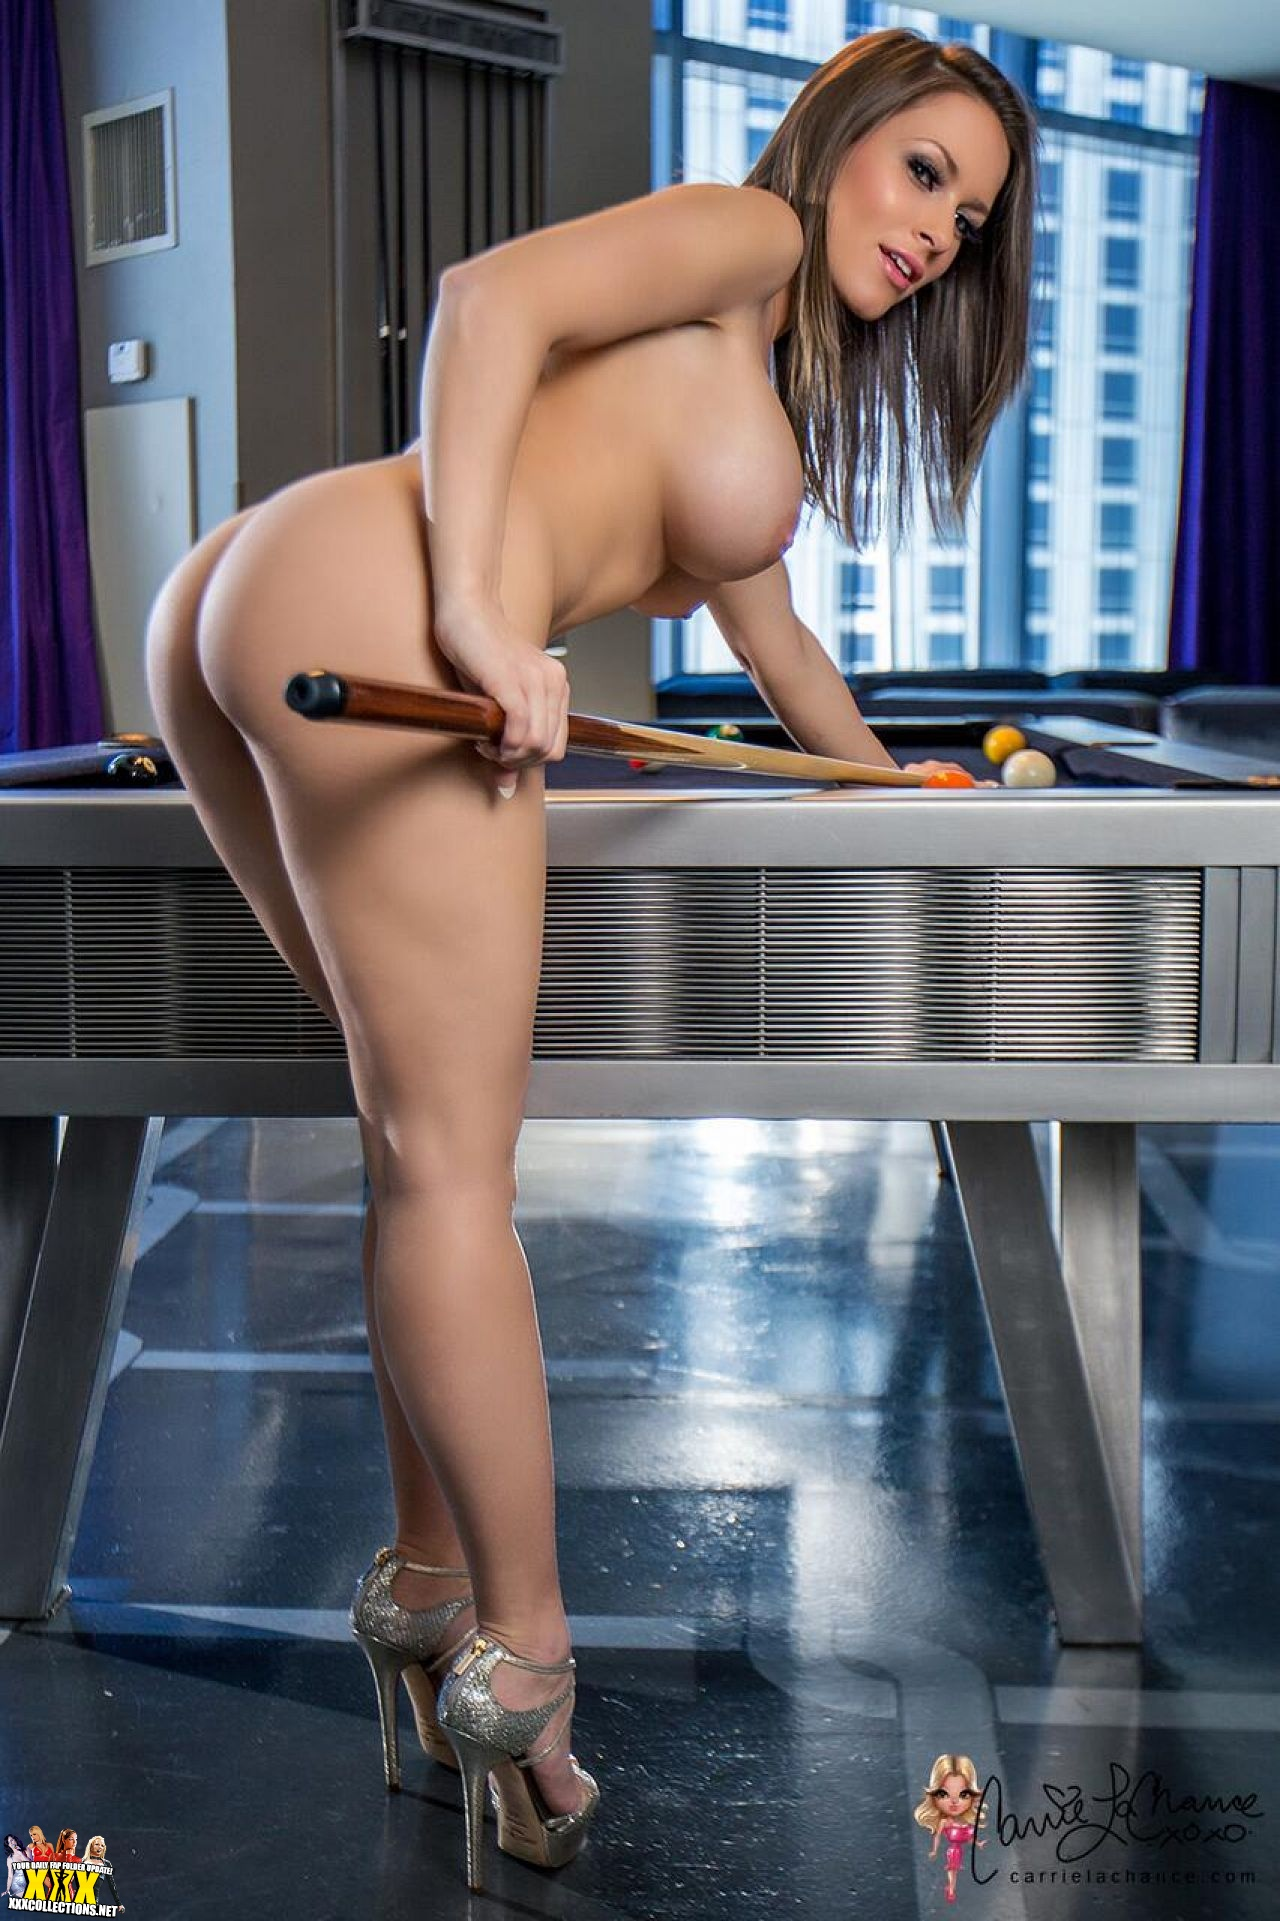 Carrie lachance pussy